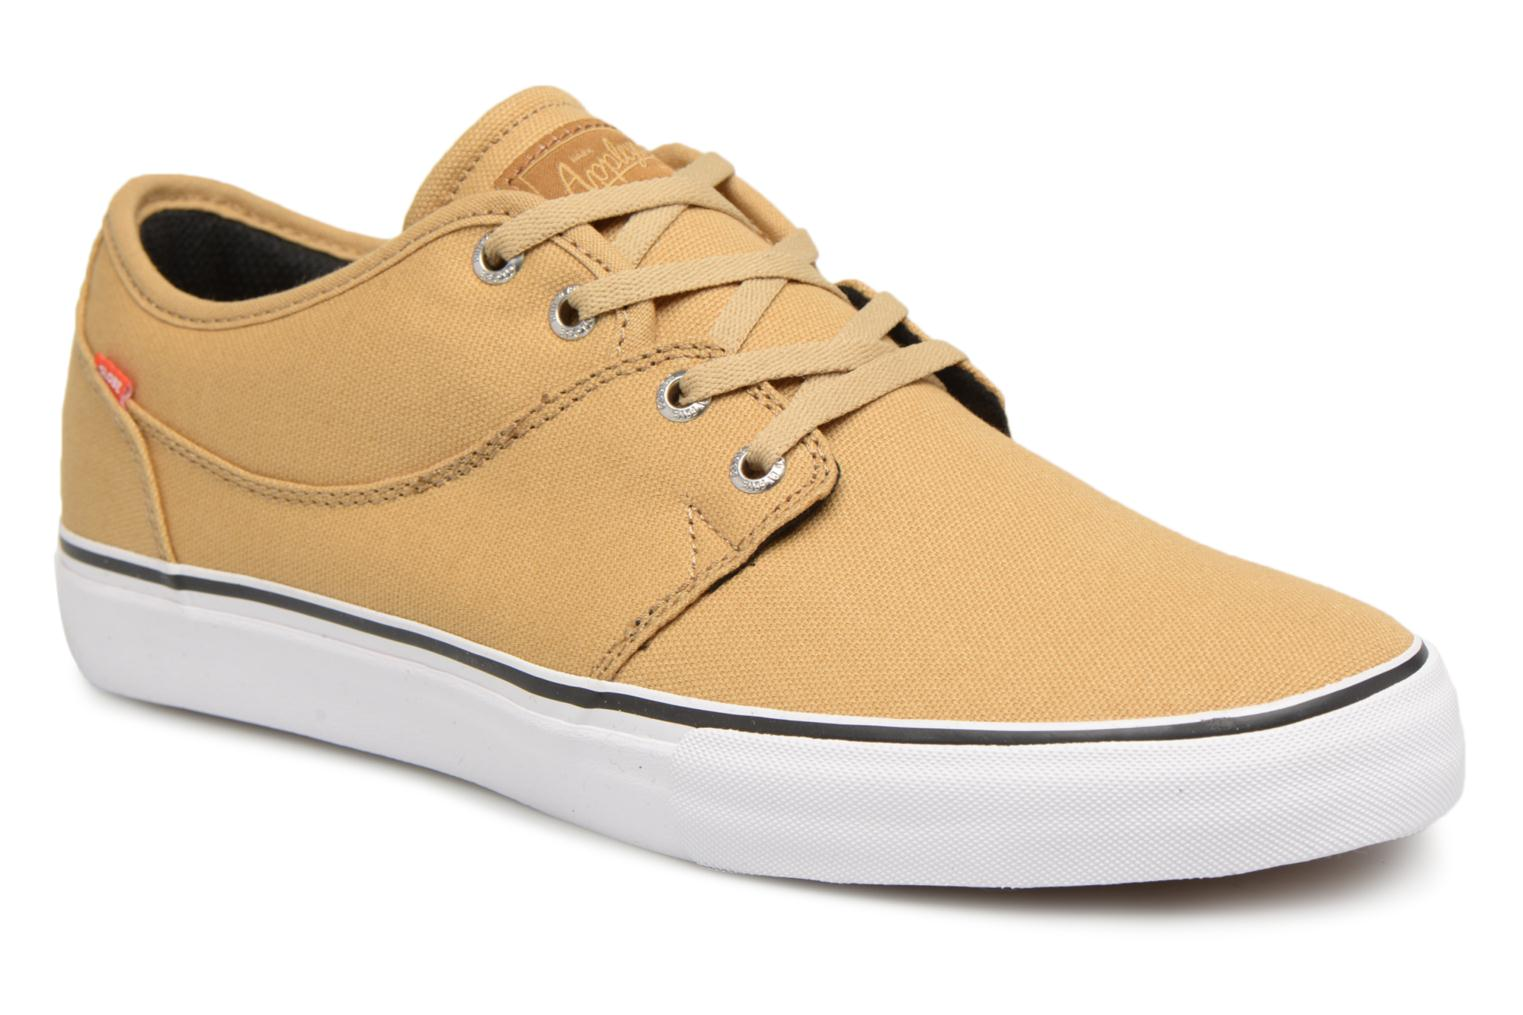 Marques Chaussure homme Globe homme MAHALO Curry